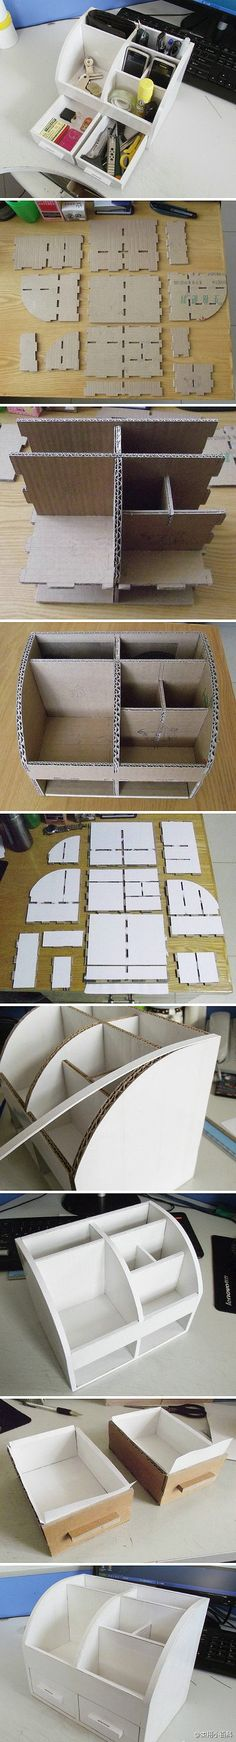 DIY desk organiser. No measurements or anything, but what a great idea!